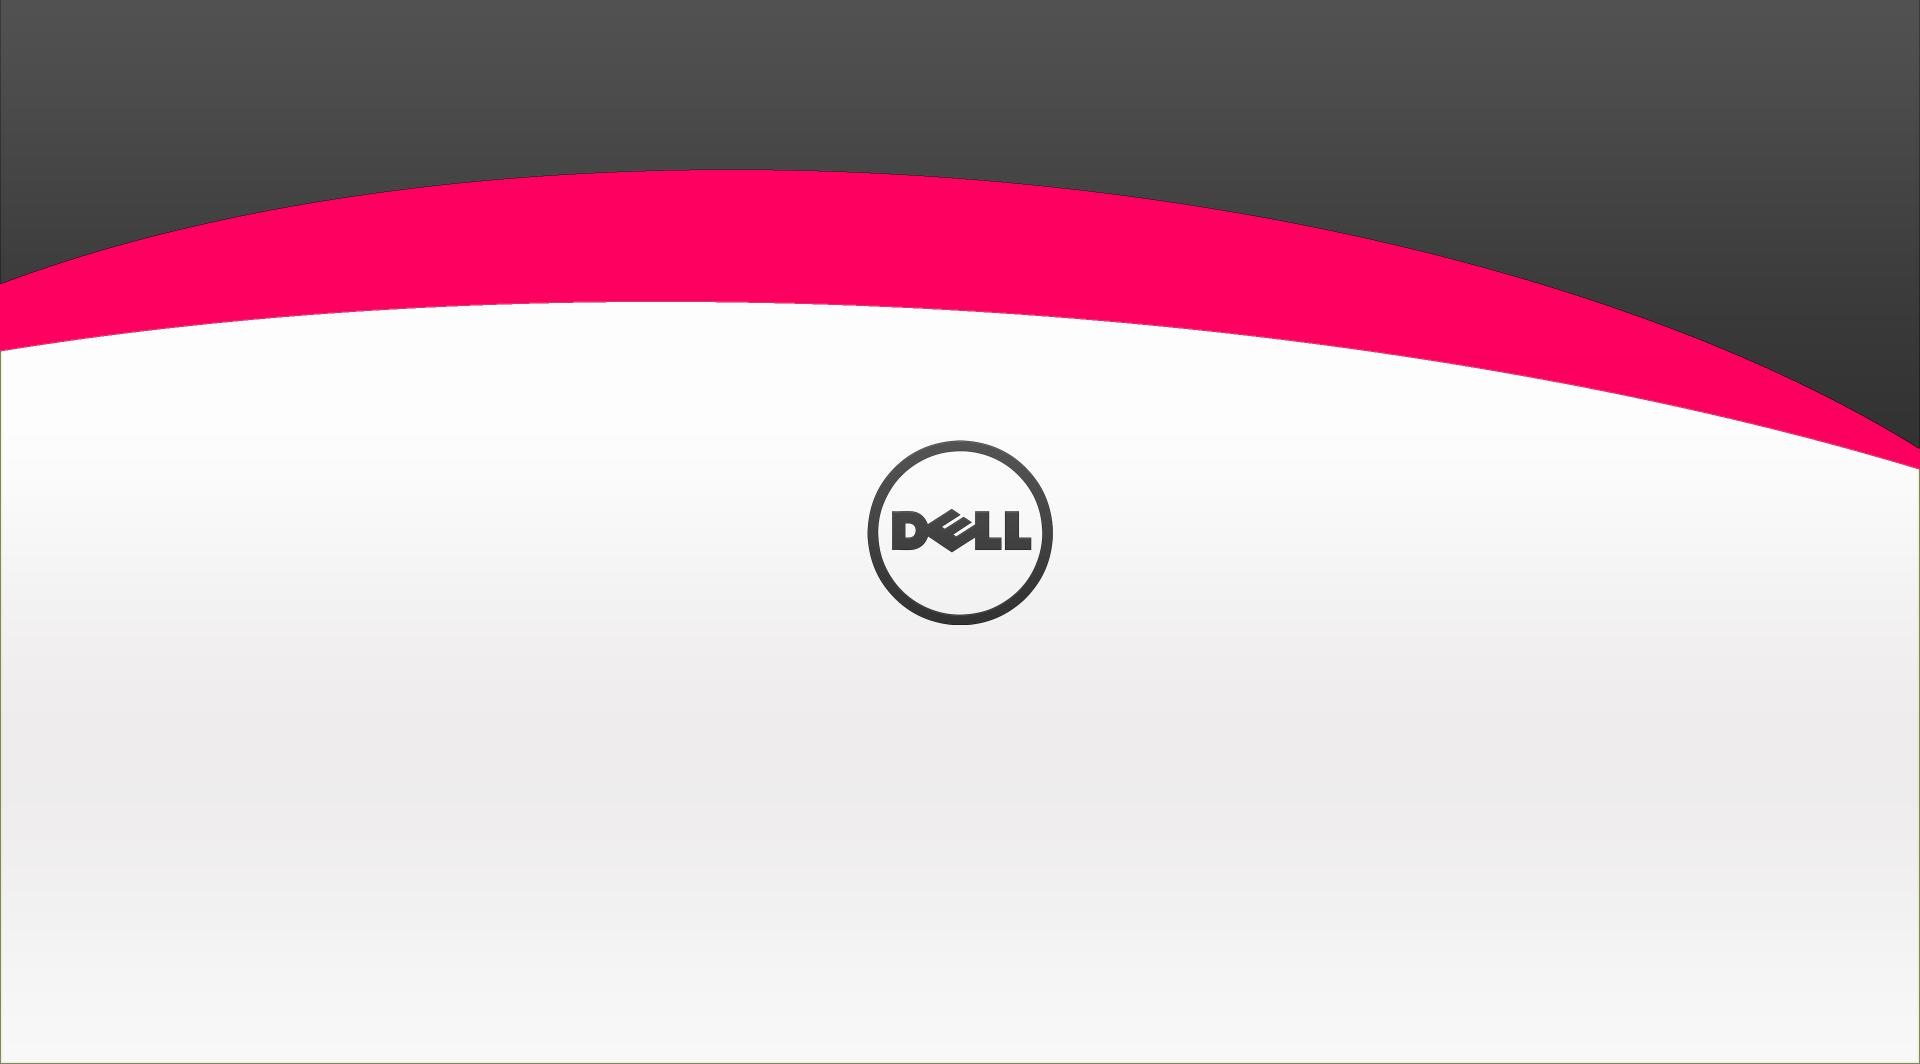 dell wallpaper hd download